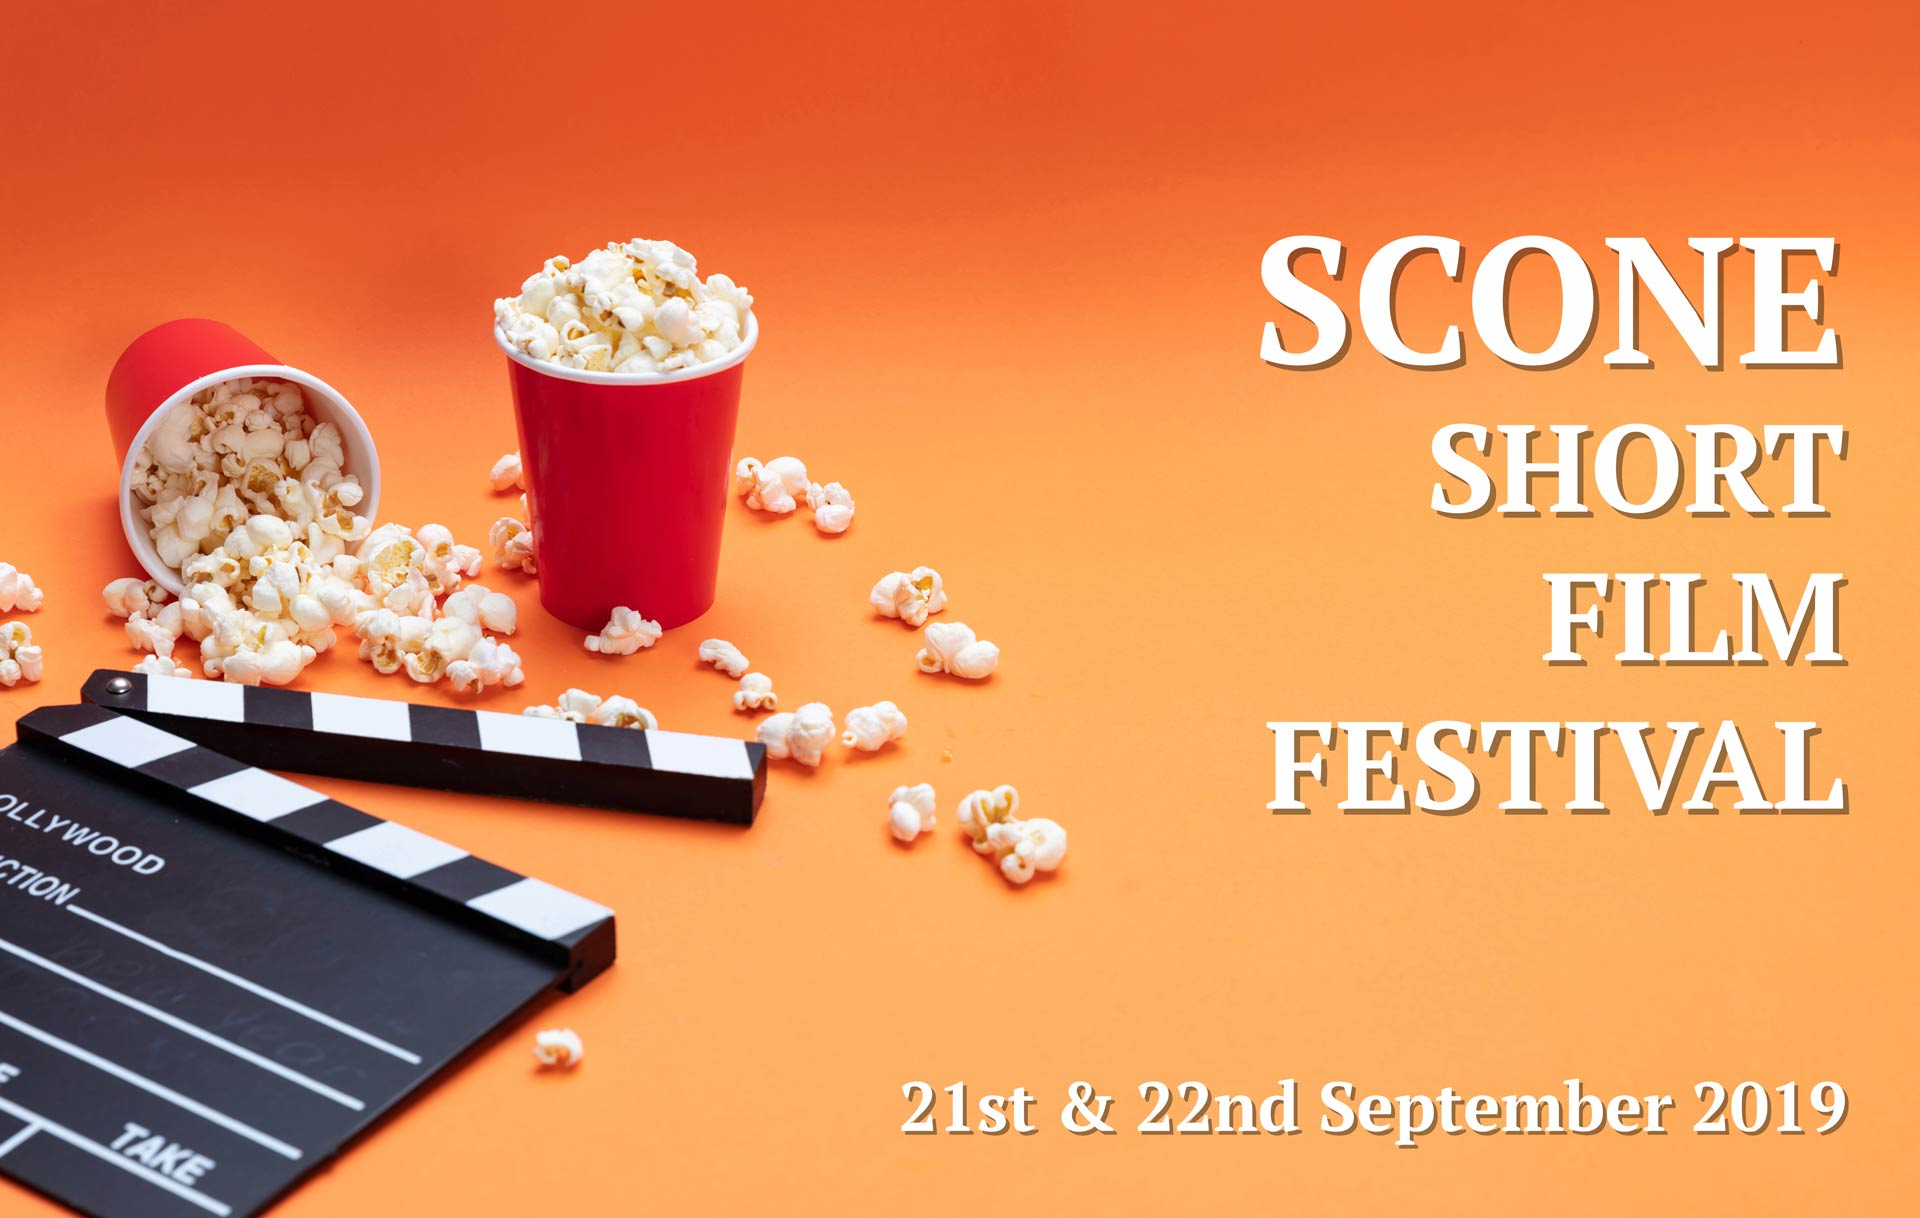 Scone Film Festival - Upper Hunter Festival and Events.